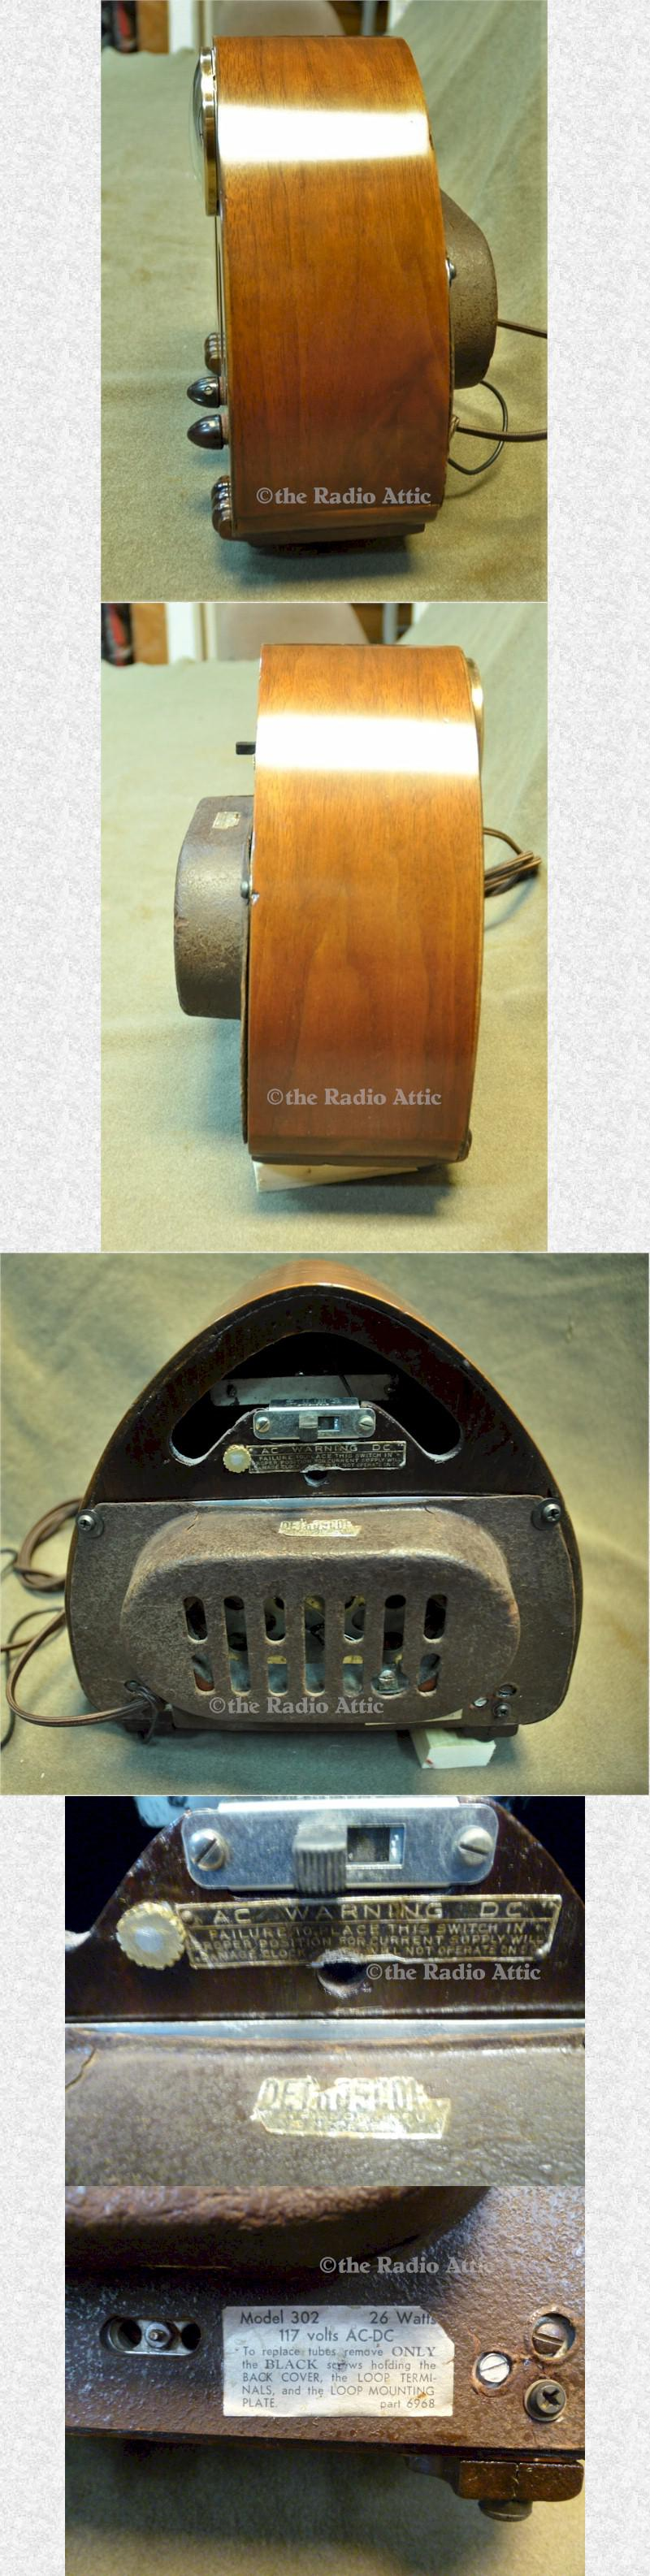 Detrola 302 Clock Radio (1939)